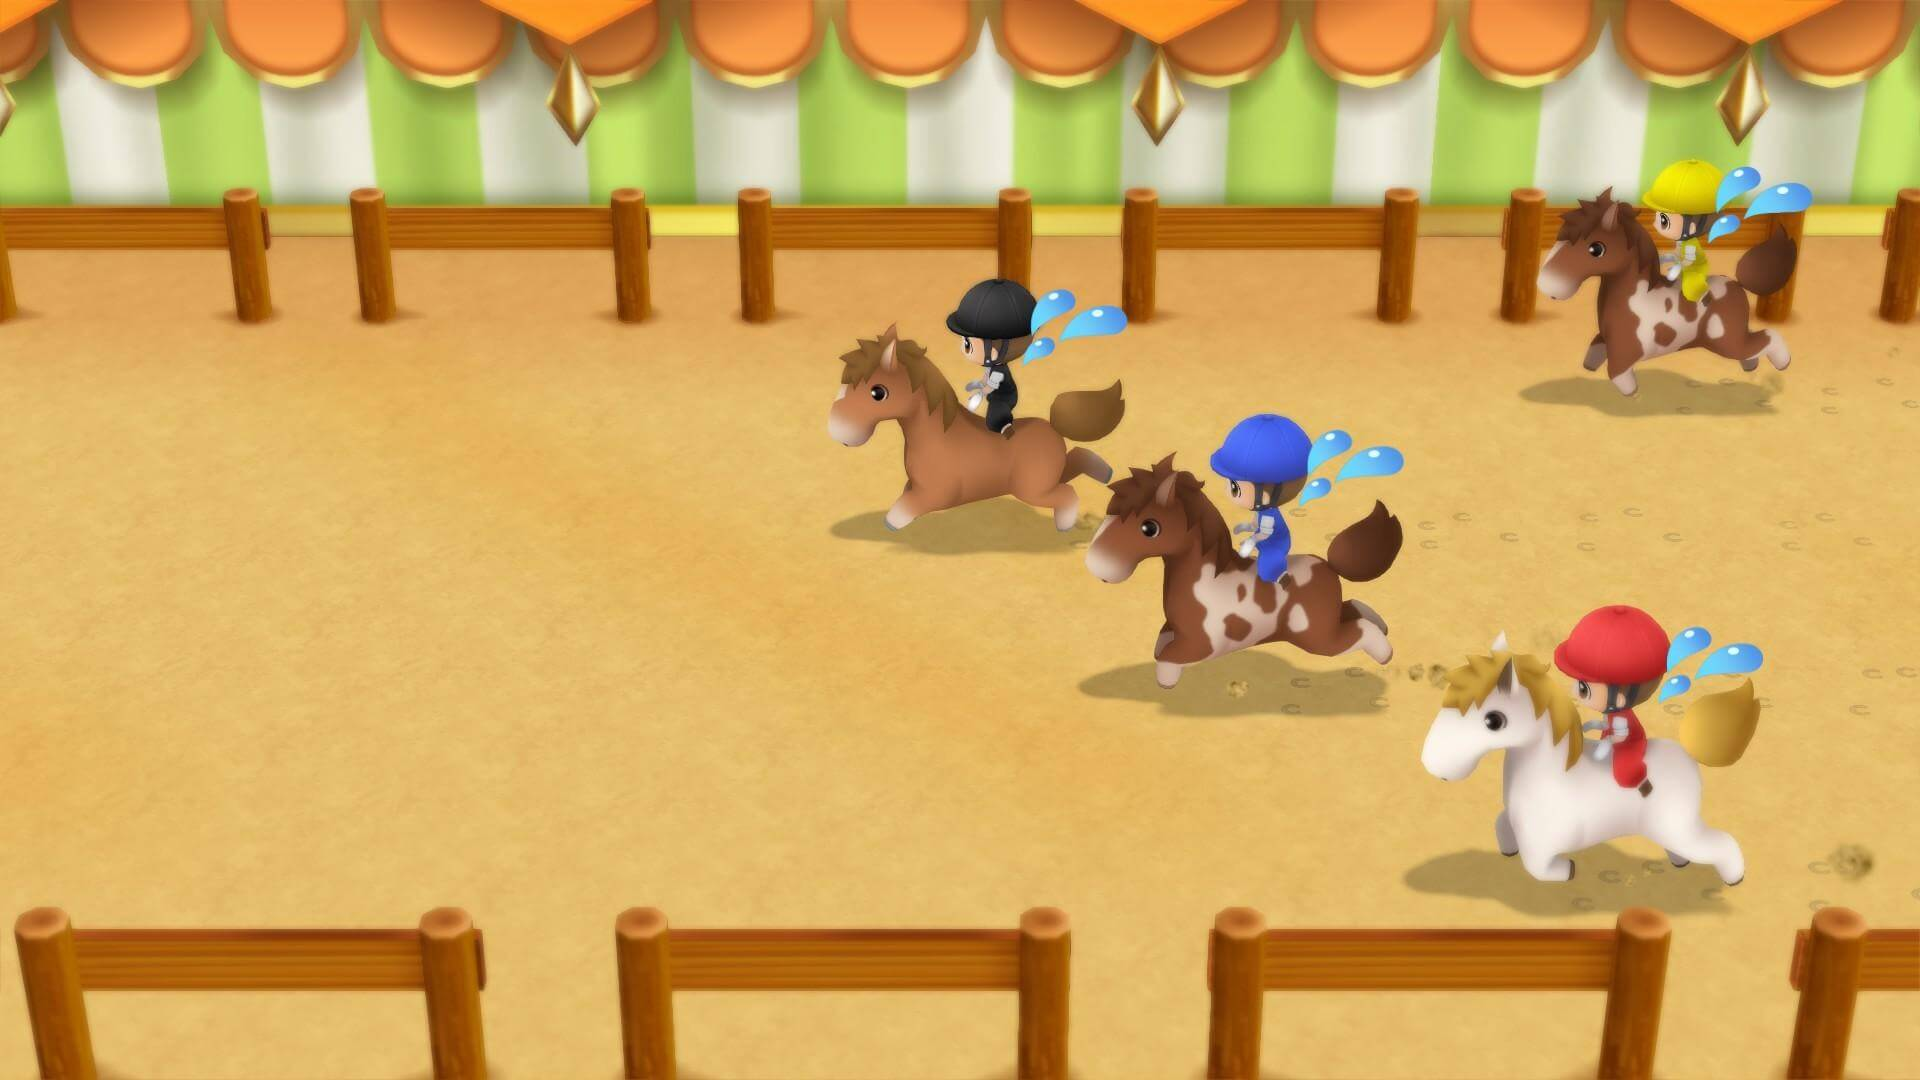 Скриншот из игры STORY OF SEASONS: Friends of Mineral Town